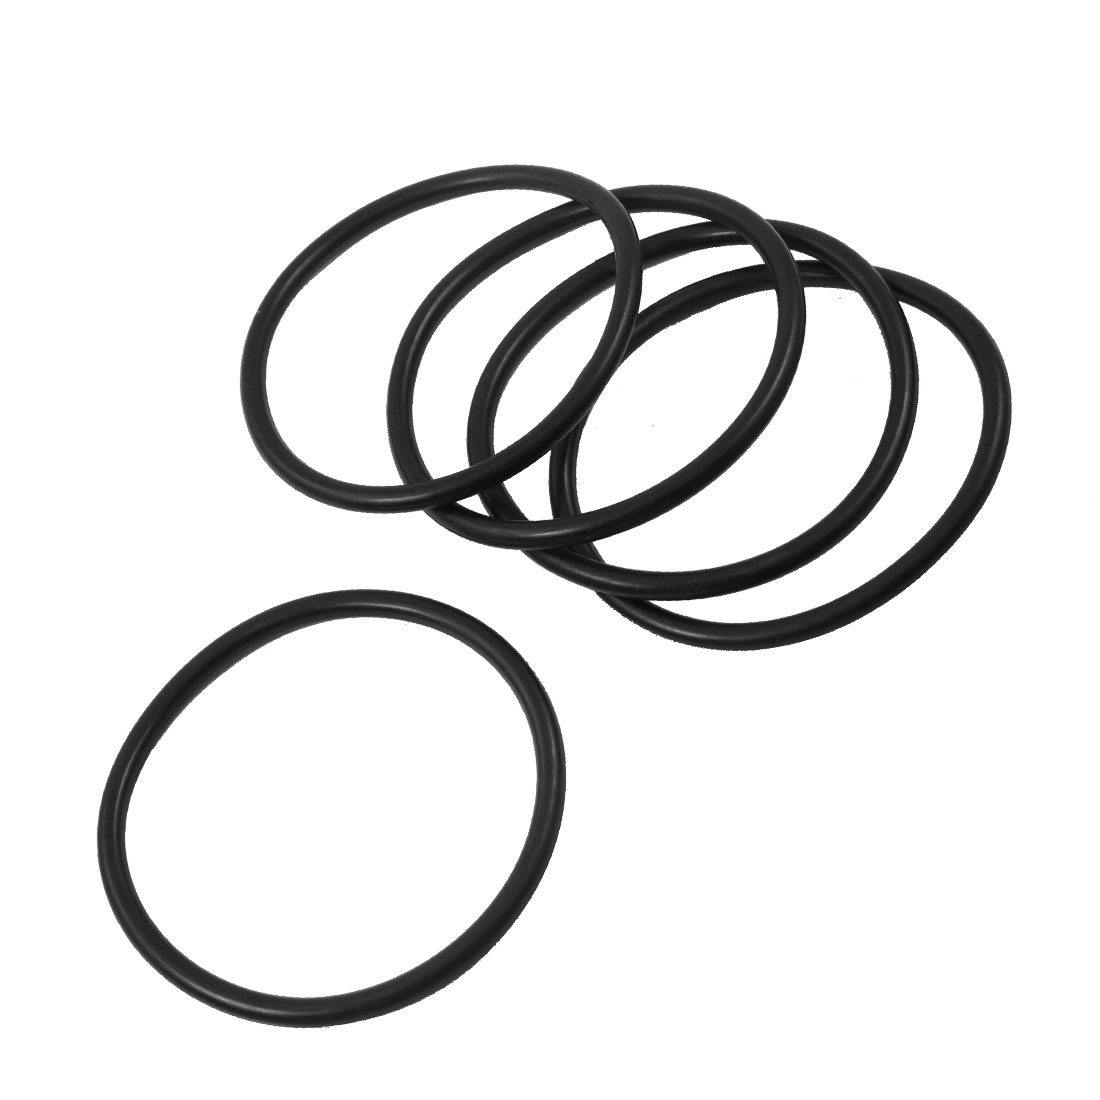 5 Pcs 65mm x 4mm Industrial Flexible Rubber O Rings Black